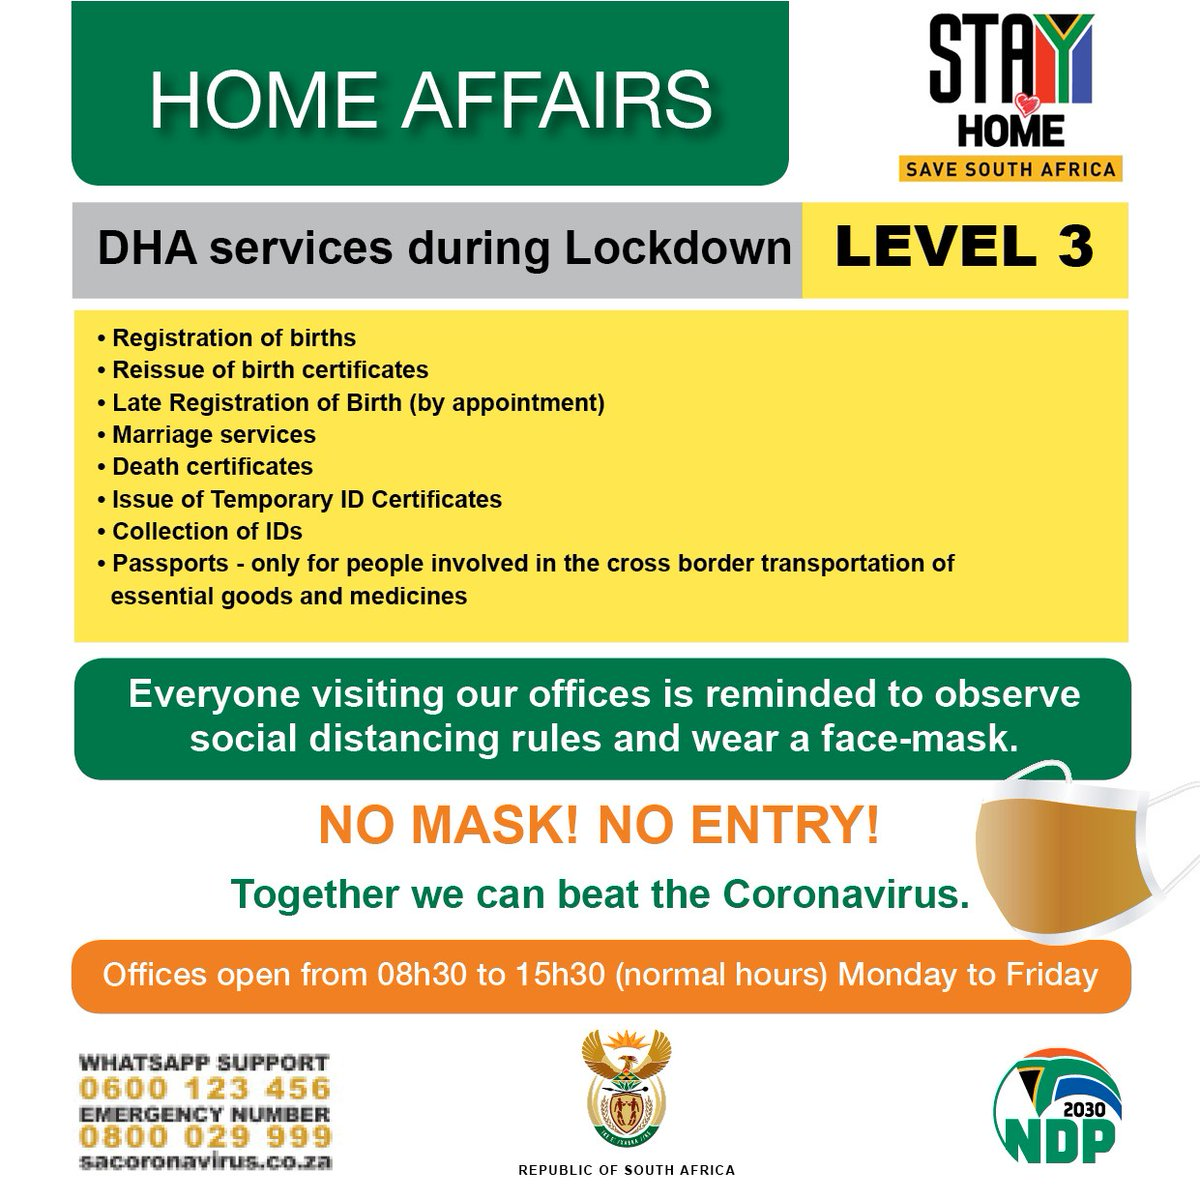 From Monday the 1st of June 2020, we'll be offering these services @GovernmentZA  #Level3Restrictions https://t.co/AXtLNXRs9J